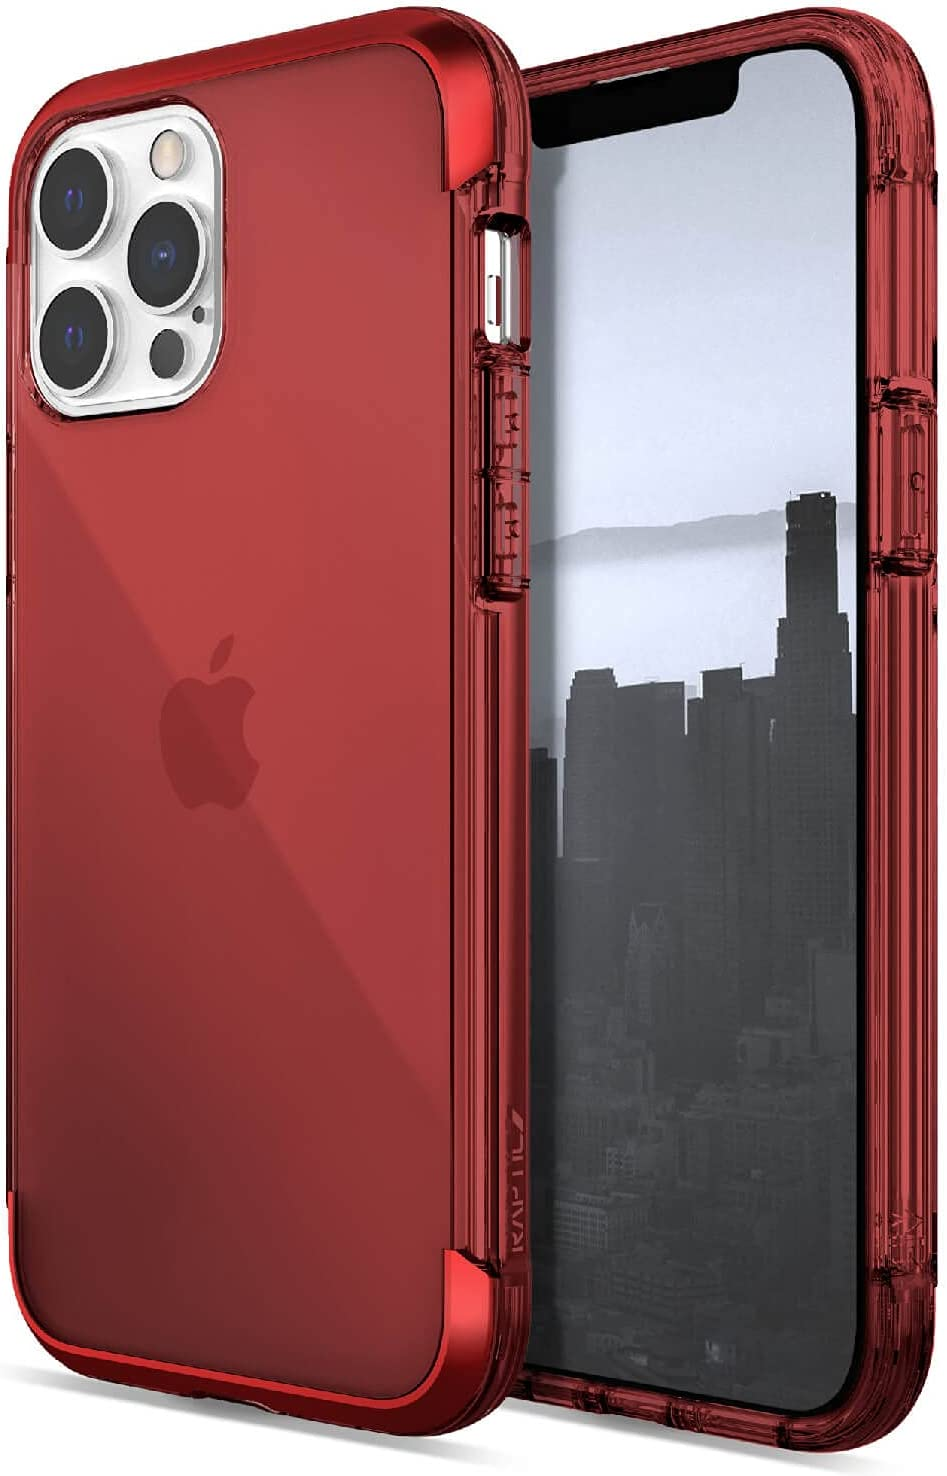 Raptic Air Case Compatible with iPhone 13 Pro Max Case, Scratch Resistant, Aluminum Metal Bumper, Wireless Charging, 13ft Drop Protection, Fits iPhone 13 Pro Max, Red